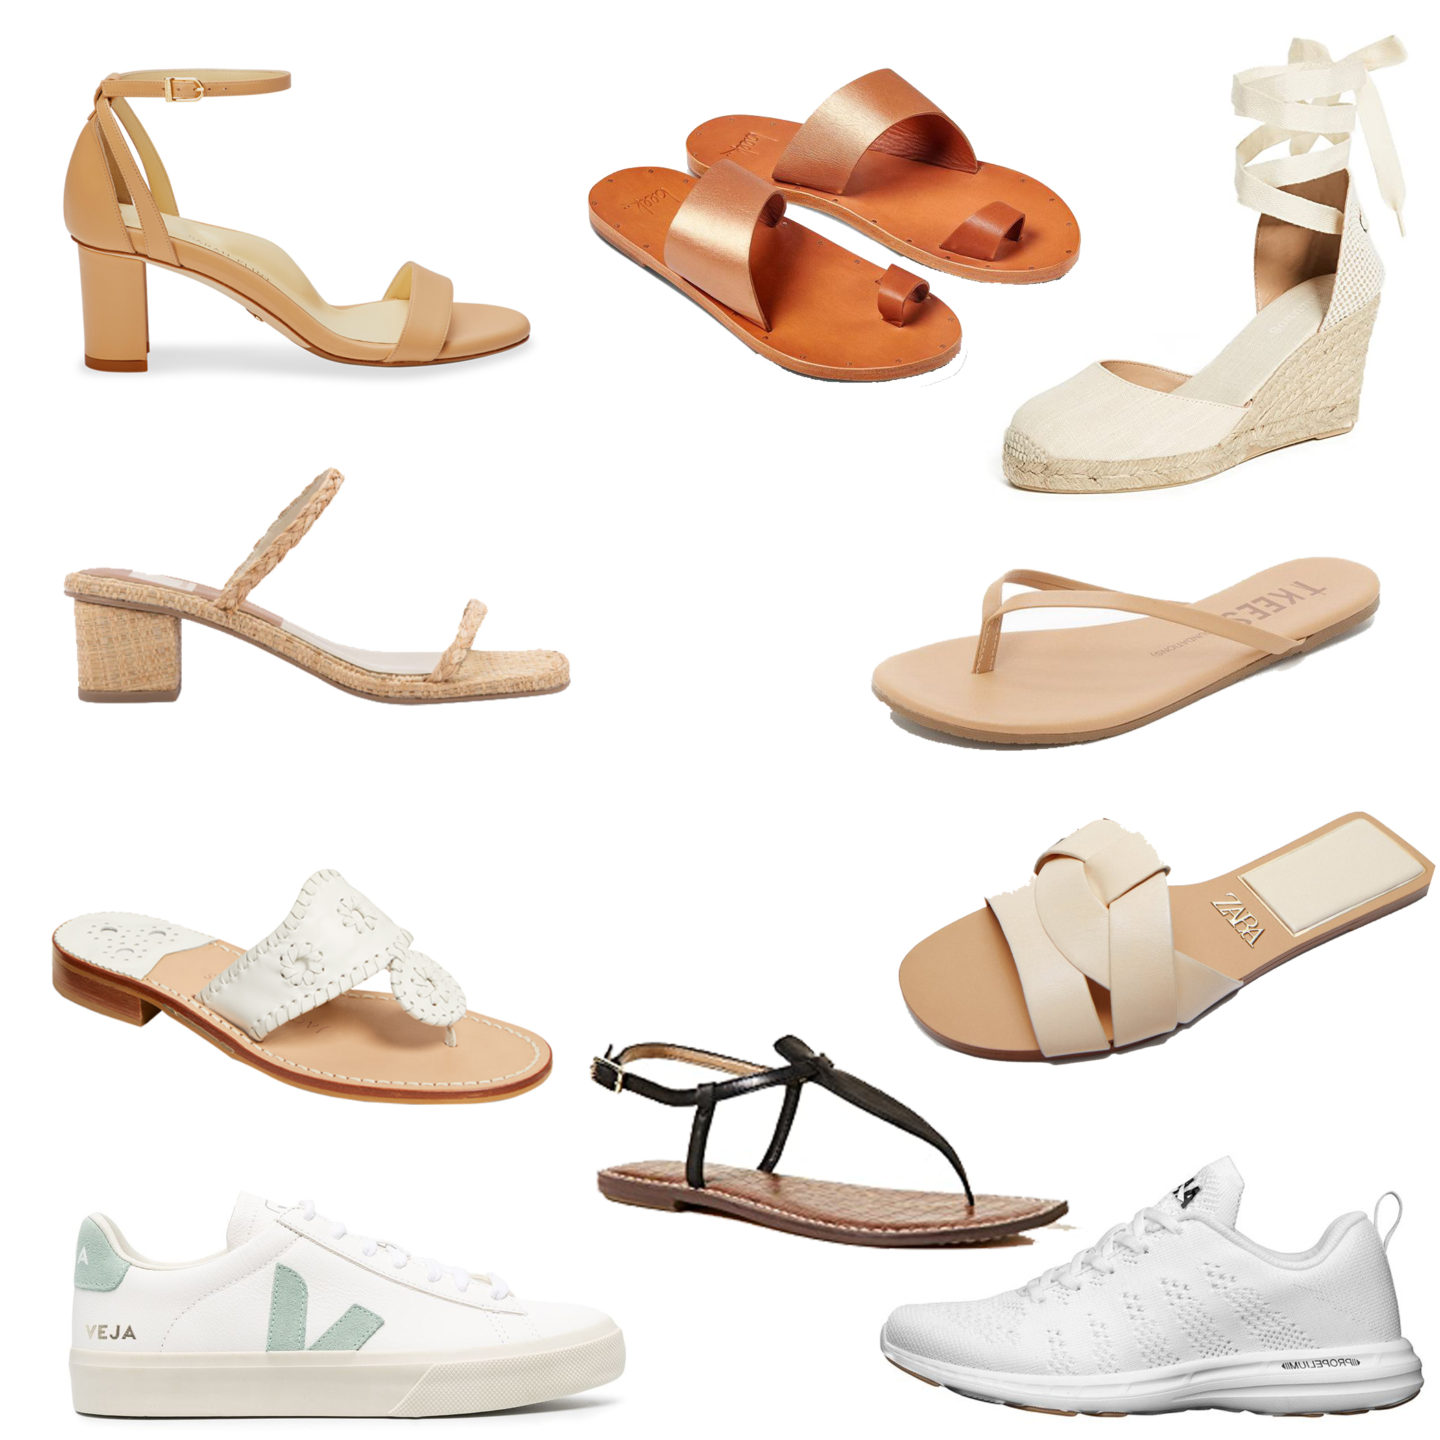 Capsule Wardrobe Summer Shoes / Turquoise and Teale